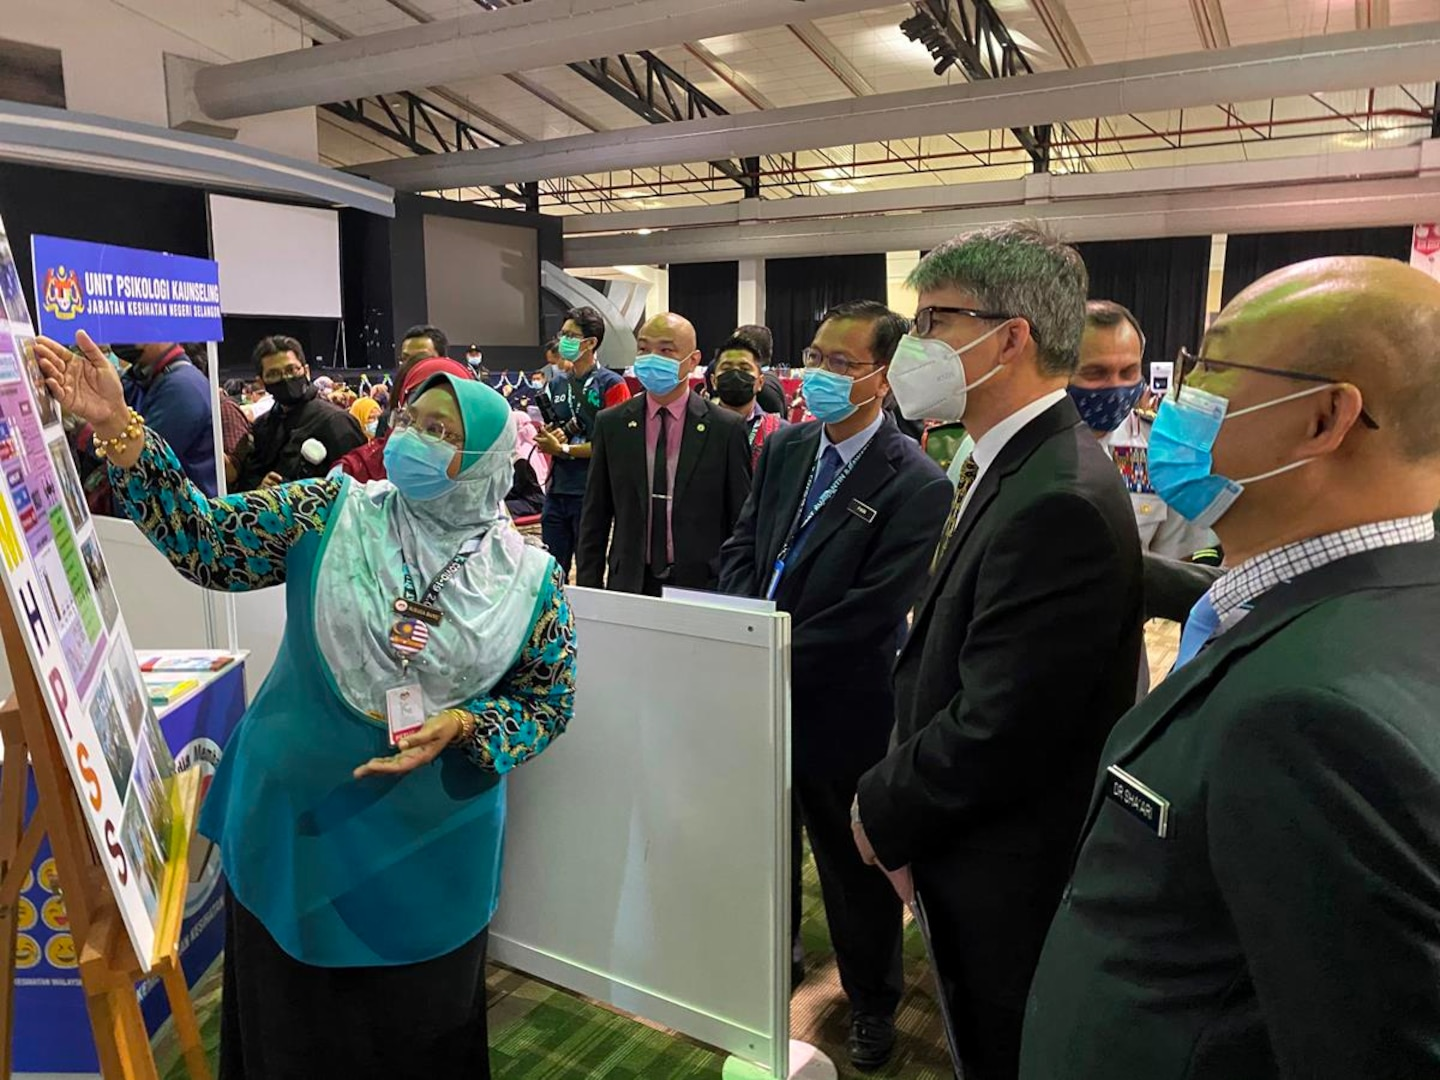 U.S. Committed to Public Health Partnership with Malaysia